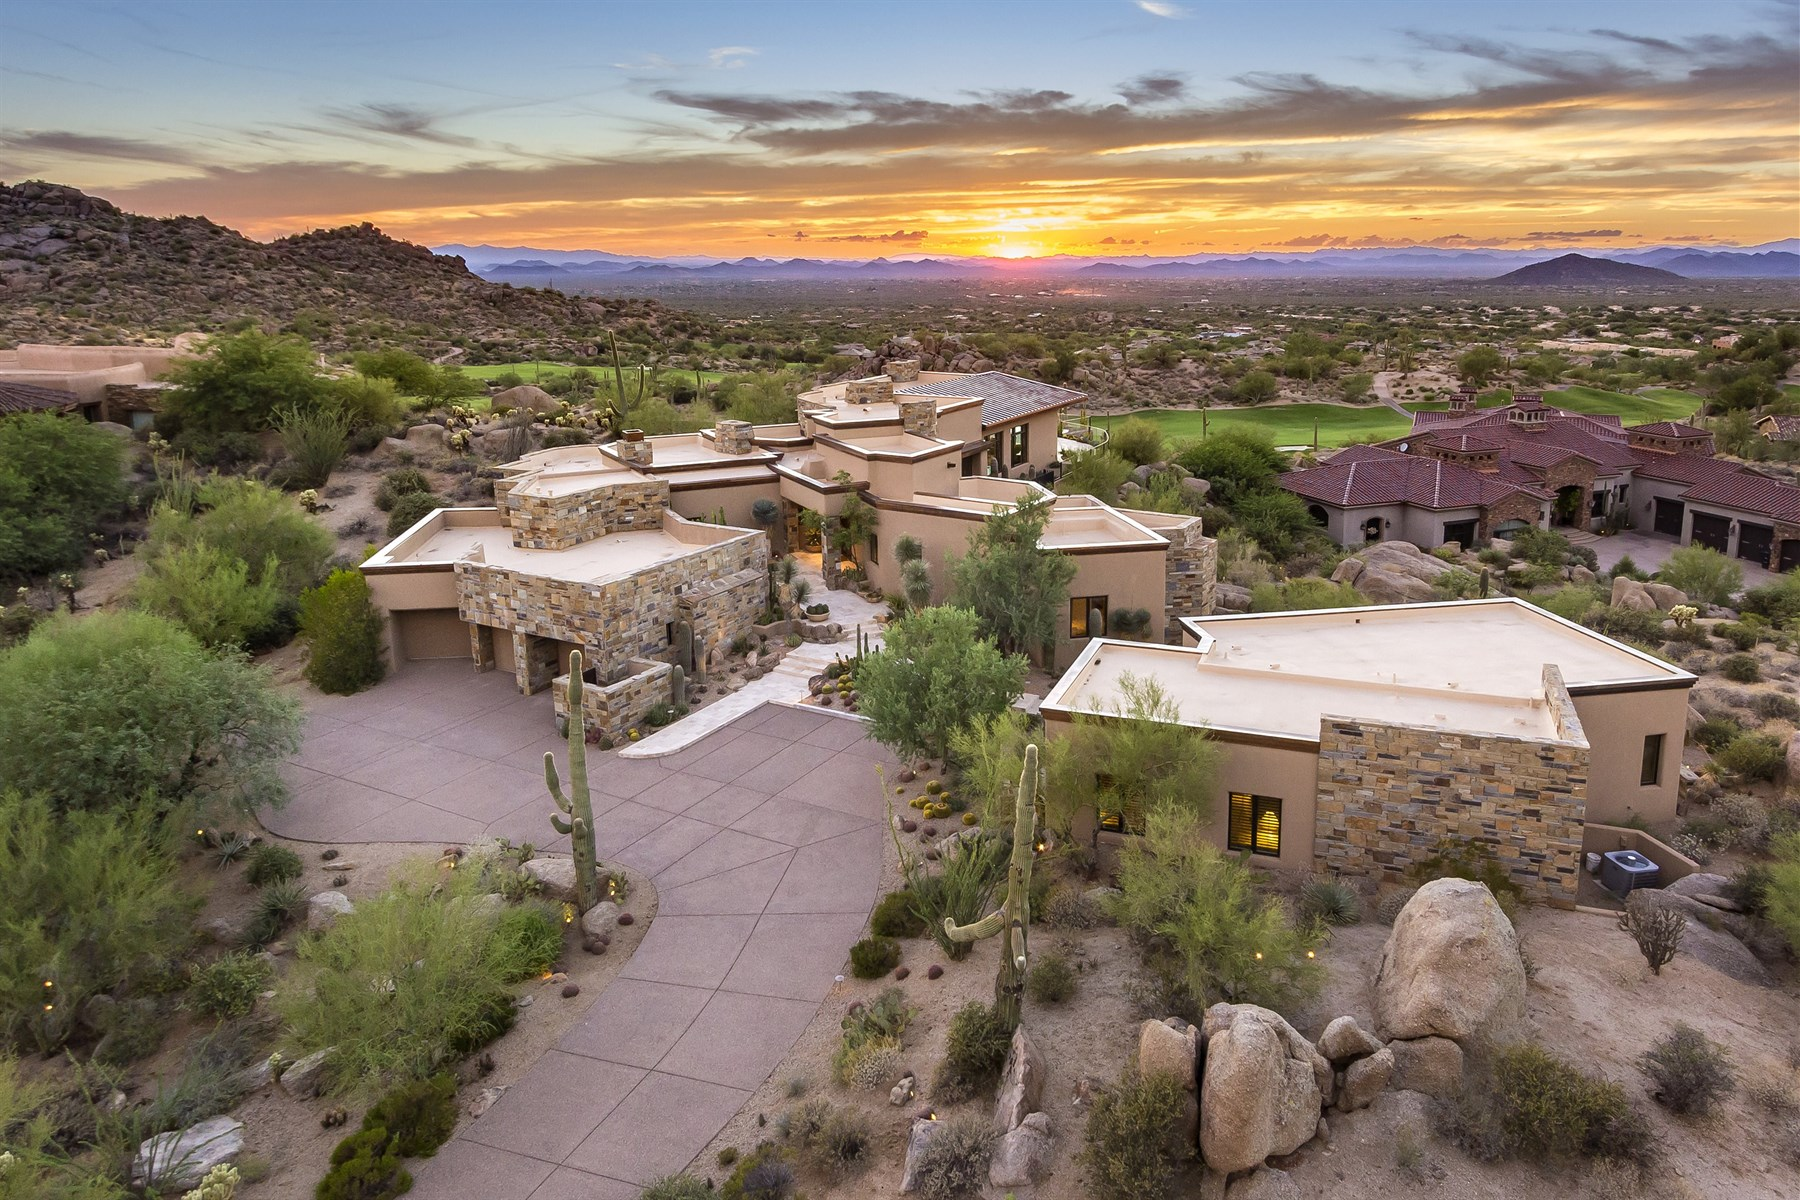 Single Family Home for Sale at One-of-a-kind hillside beauty 27770 N 103rd Pl Scottsdale, Arizona 85262 United States